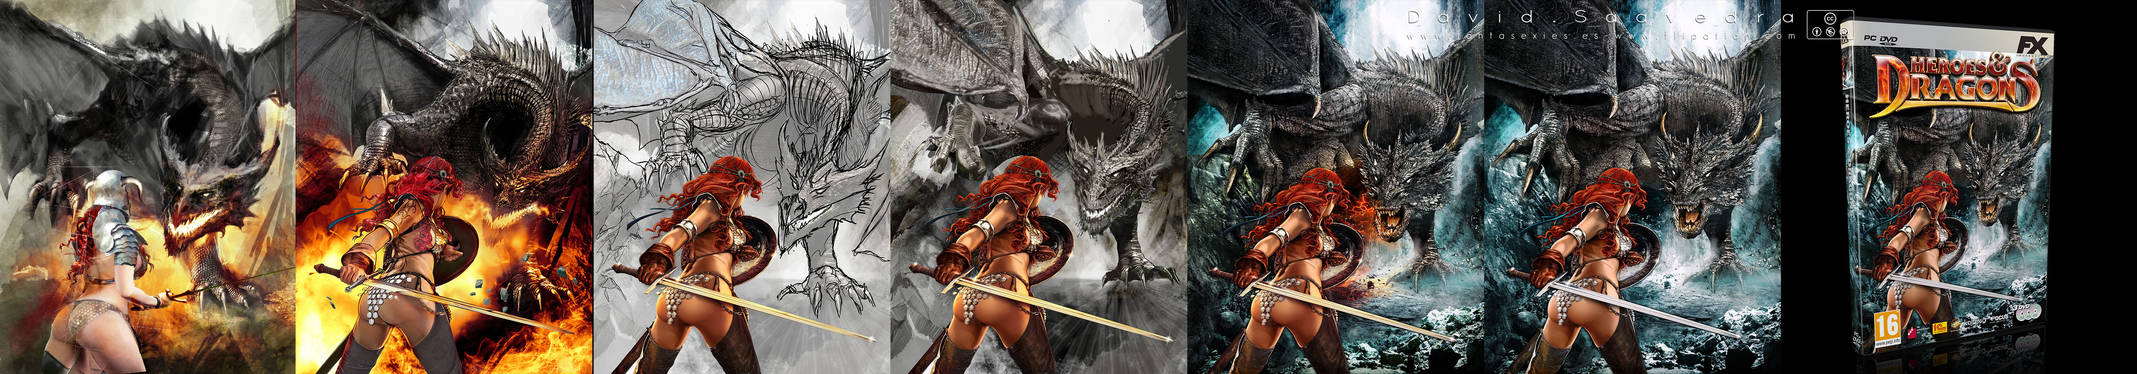 Heroes and Dragons. Illustration steps.